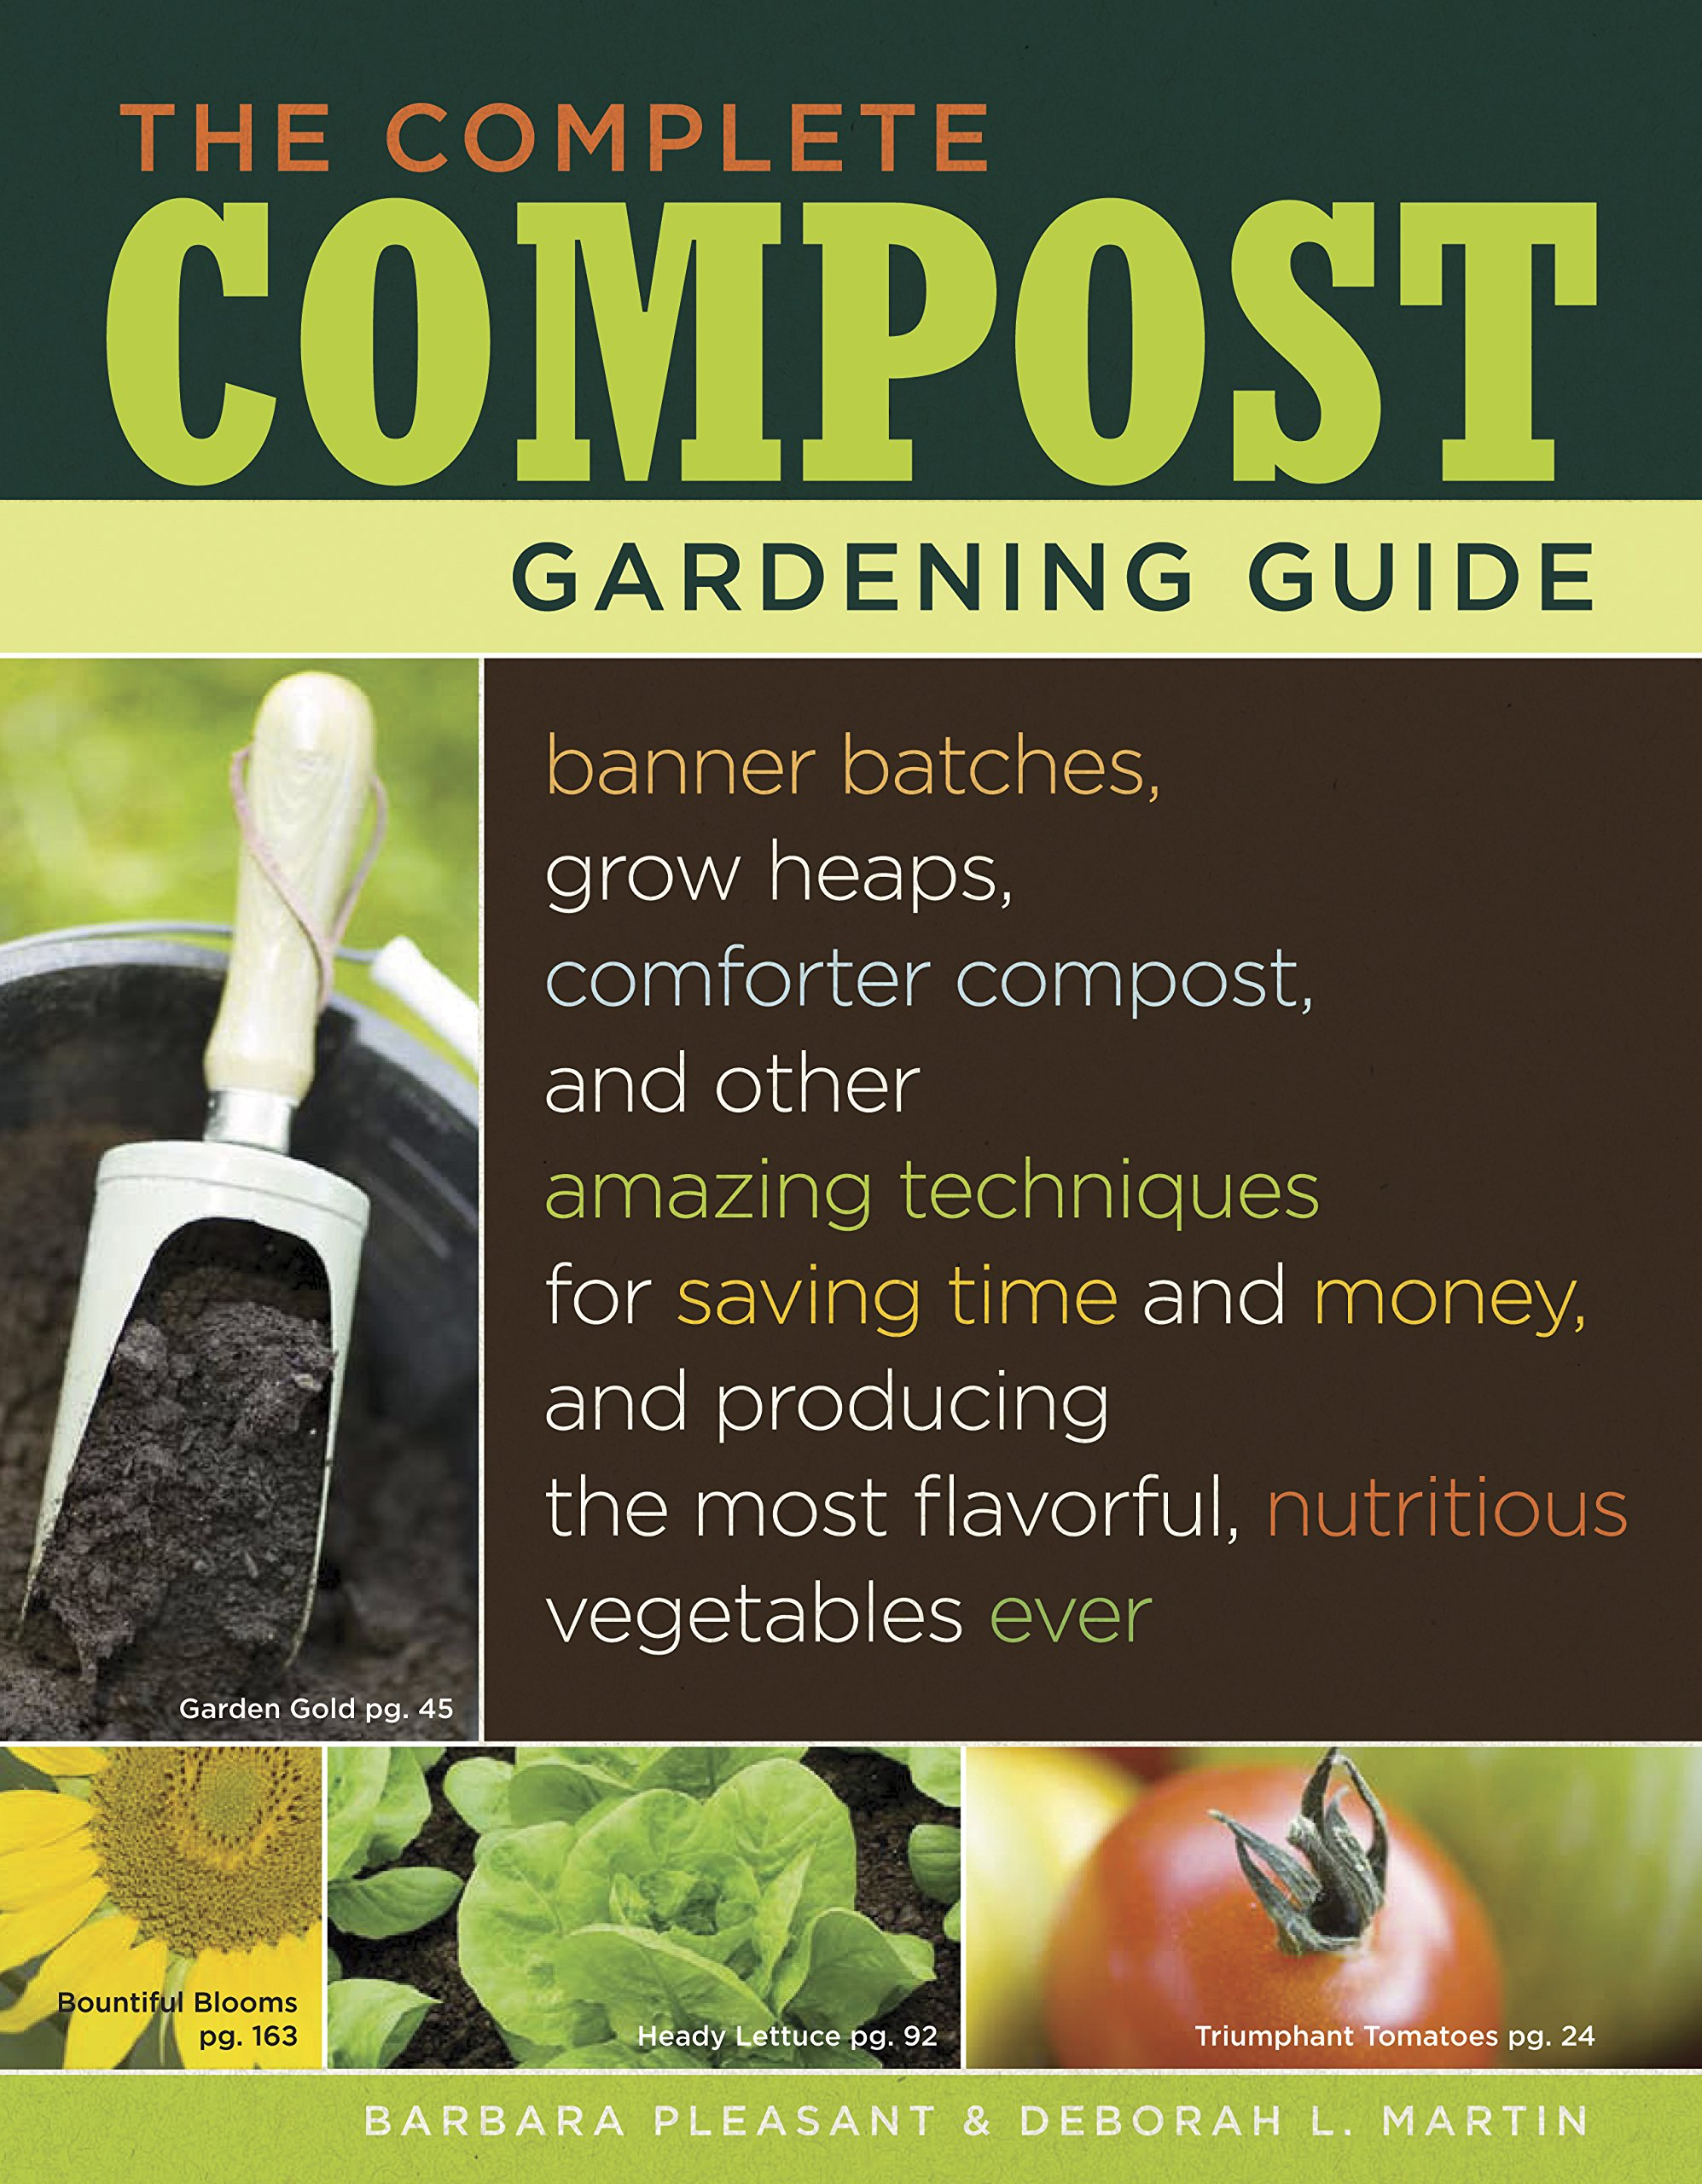 The Complete Compost Gardening Guide: Banner batches, grow heaps ...